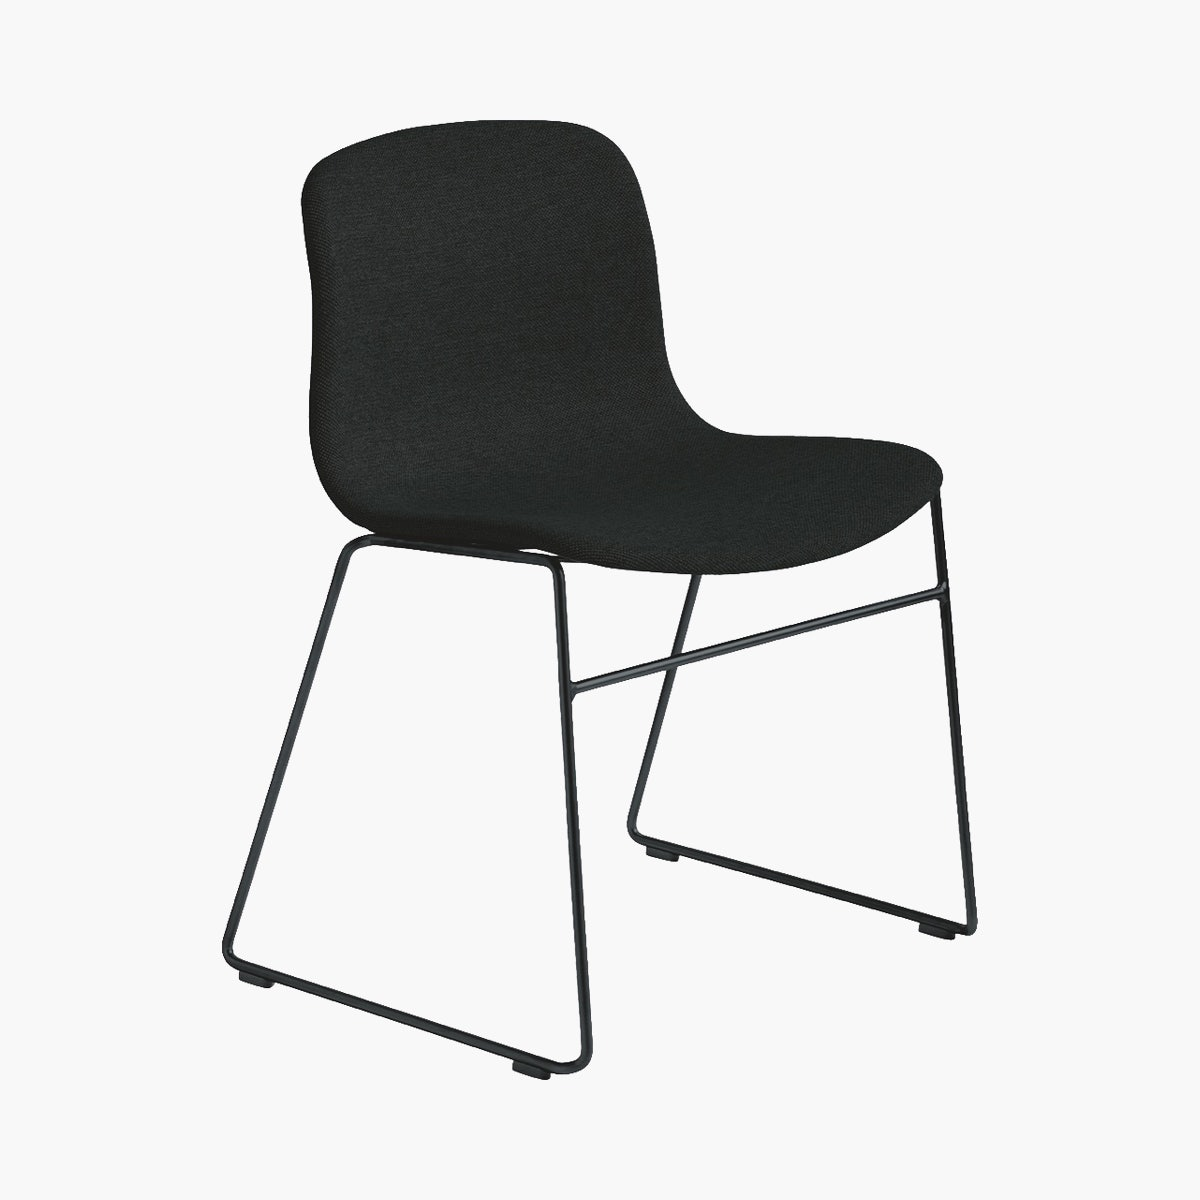 AAC 09 - About a Chair - Upholstered Side Chair Sled Base